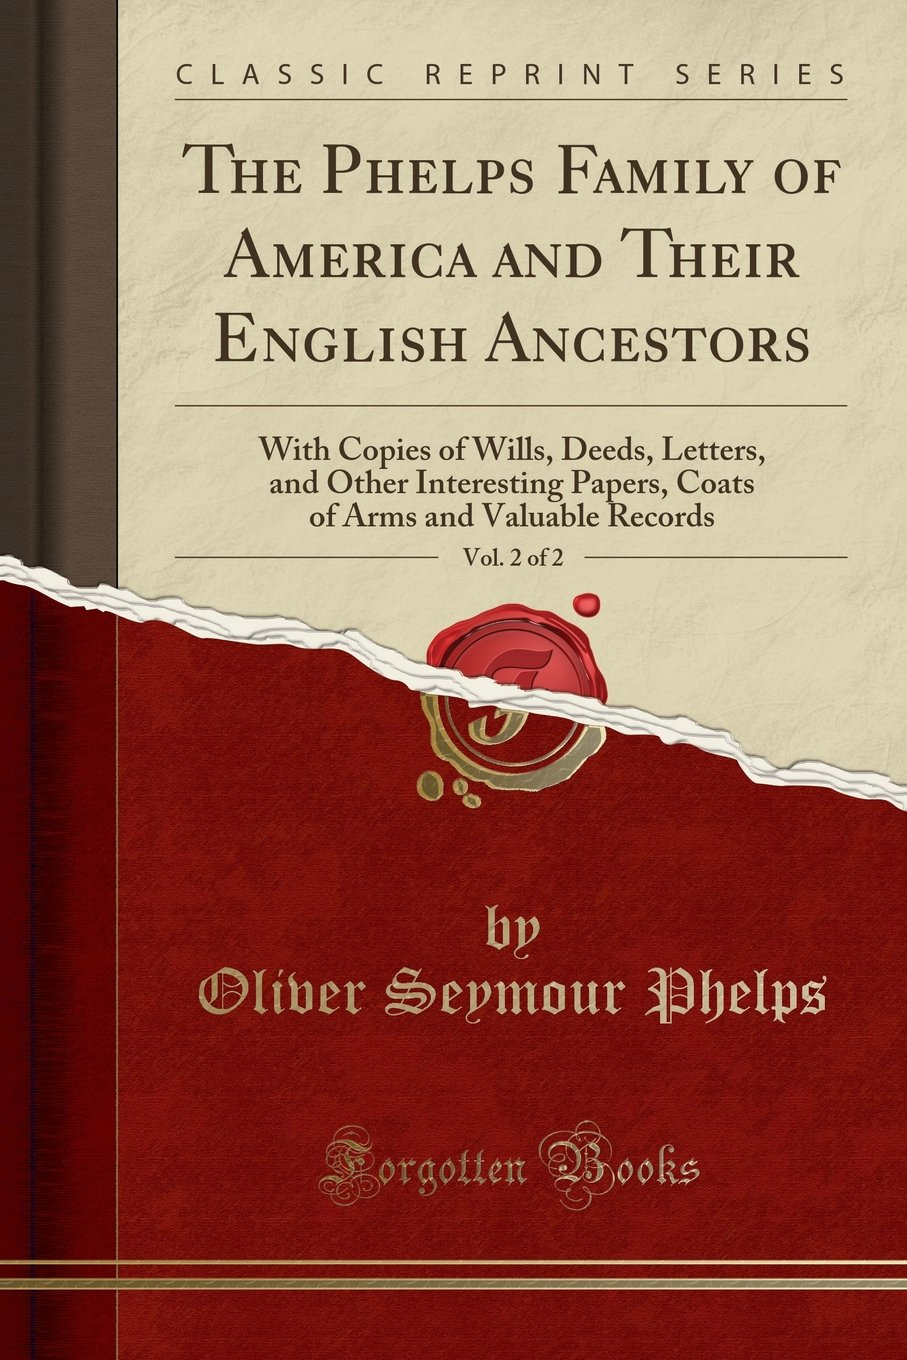 The Phelps Family of America and Their English Ancestors, Vol. 2 of 2: With Copies of Wills, Deeds, Letters, and Other Interesting Papers, Coats of Arms and Valuable Records (Classic Reprint) PDF ePub fb2 ebook